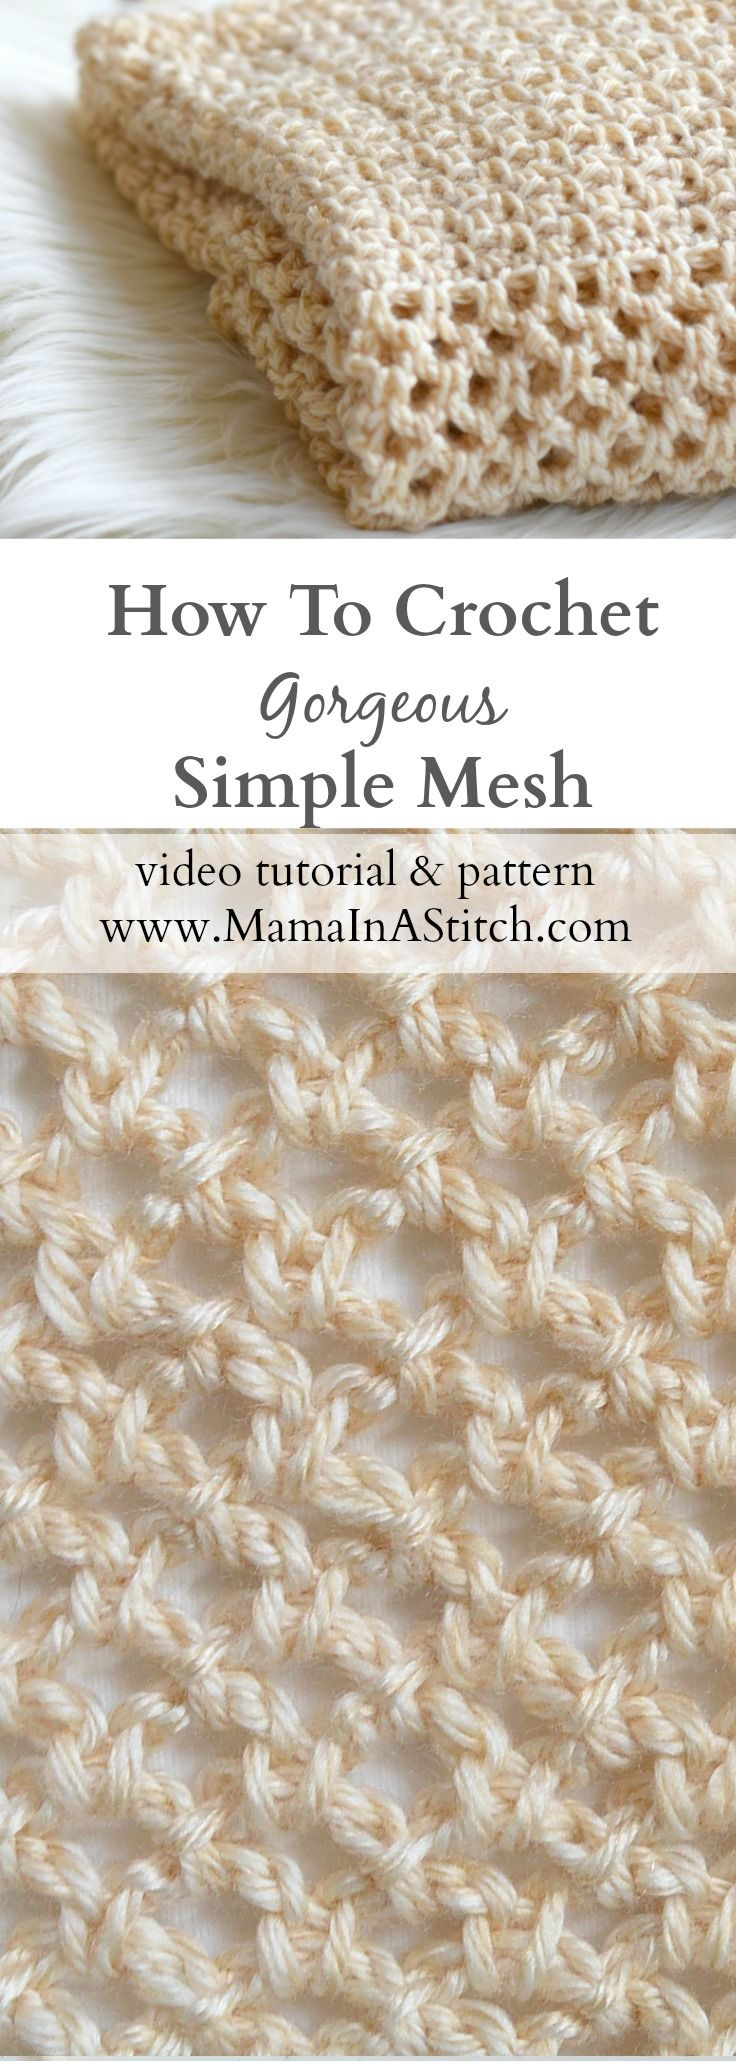 How To Crochet An Easy Mesh Stitch Via @mamainastitch This Is A Modern Mesh  Stitch